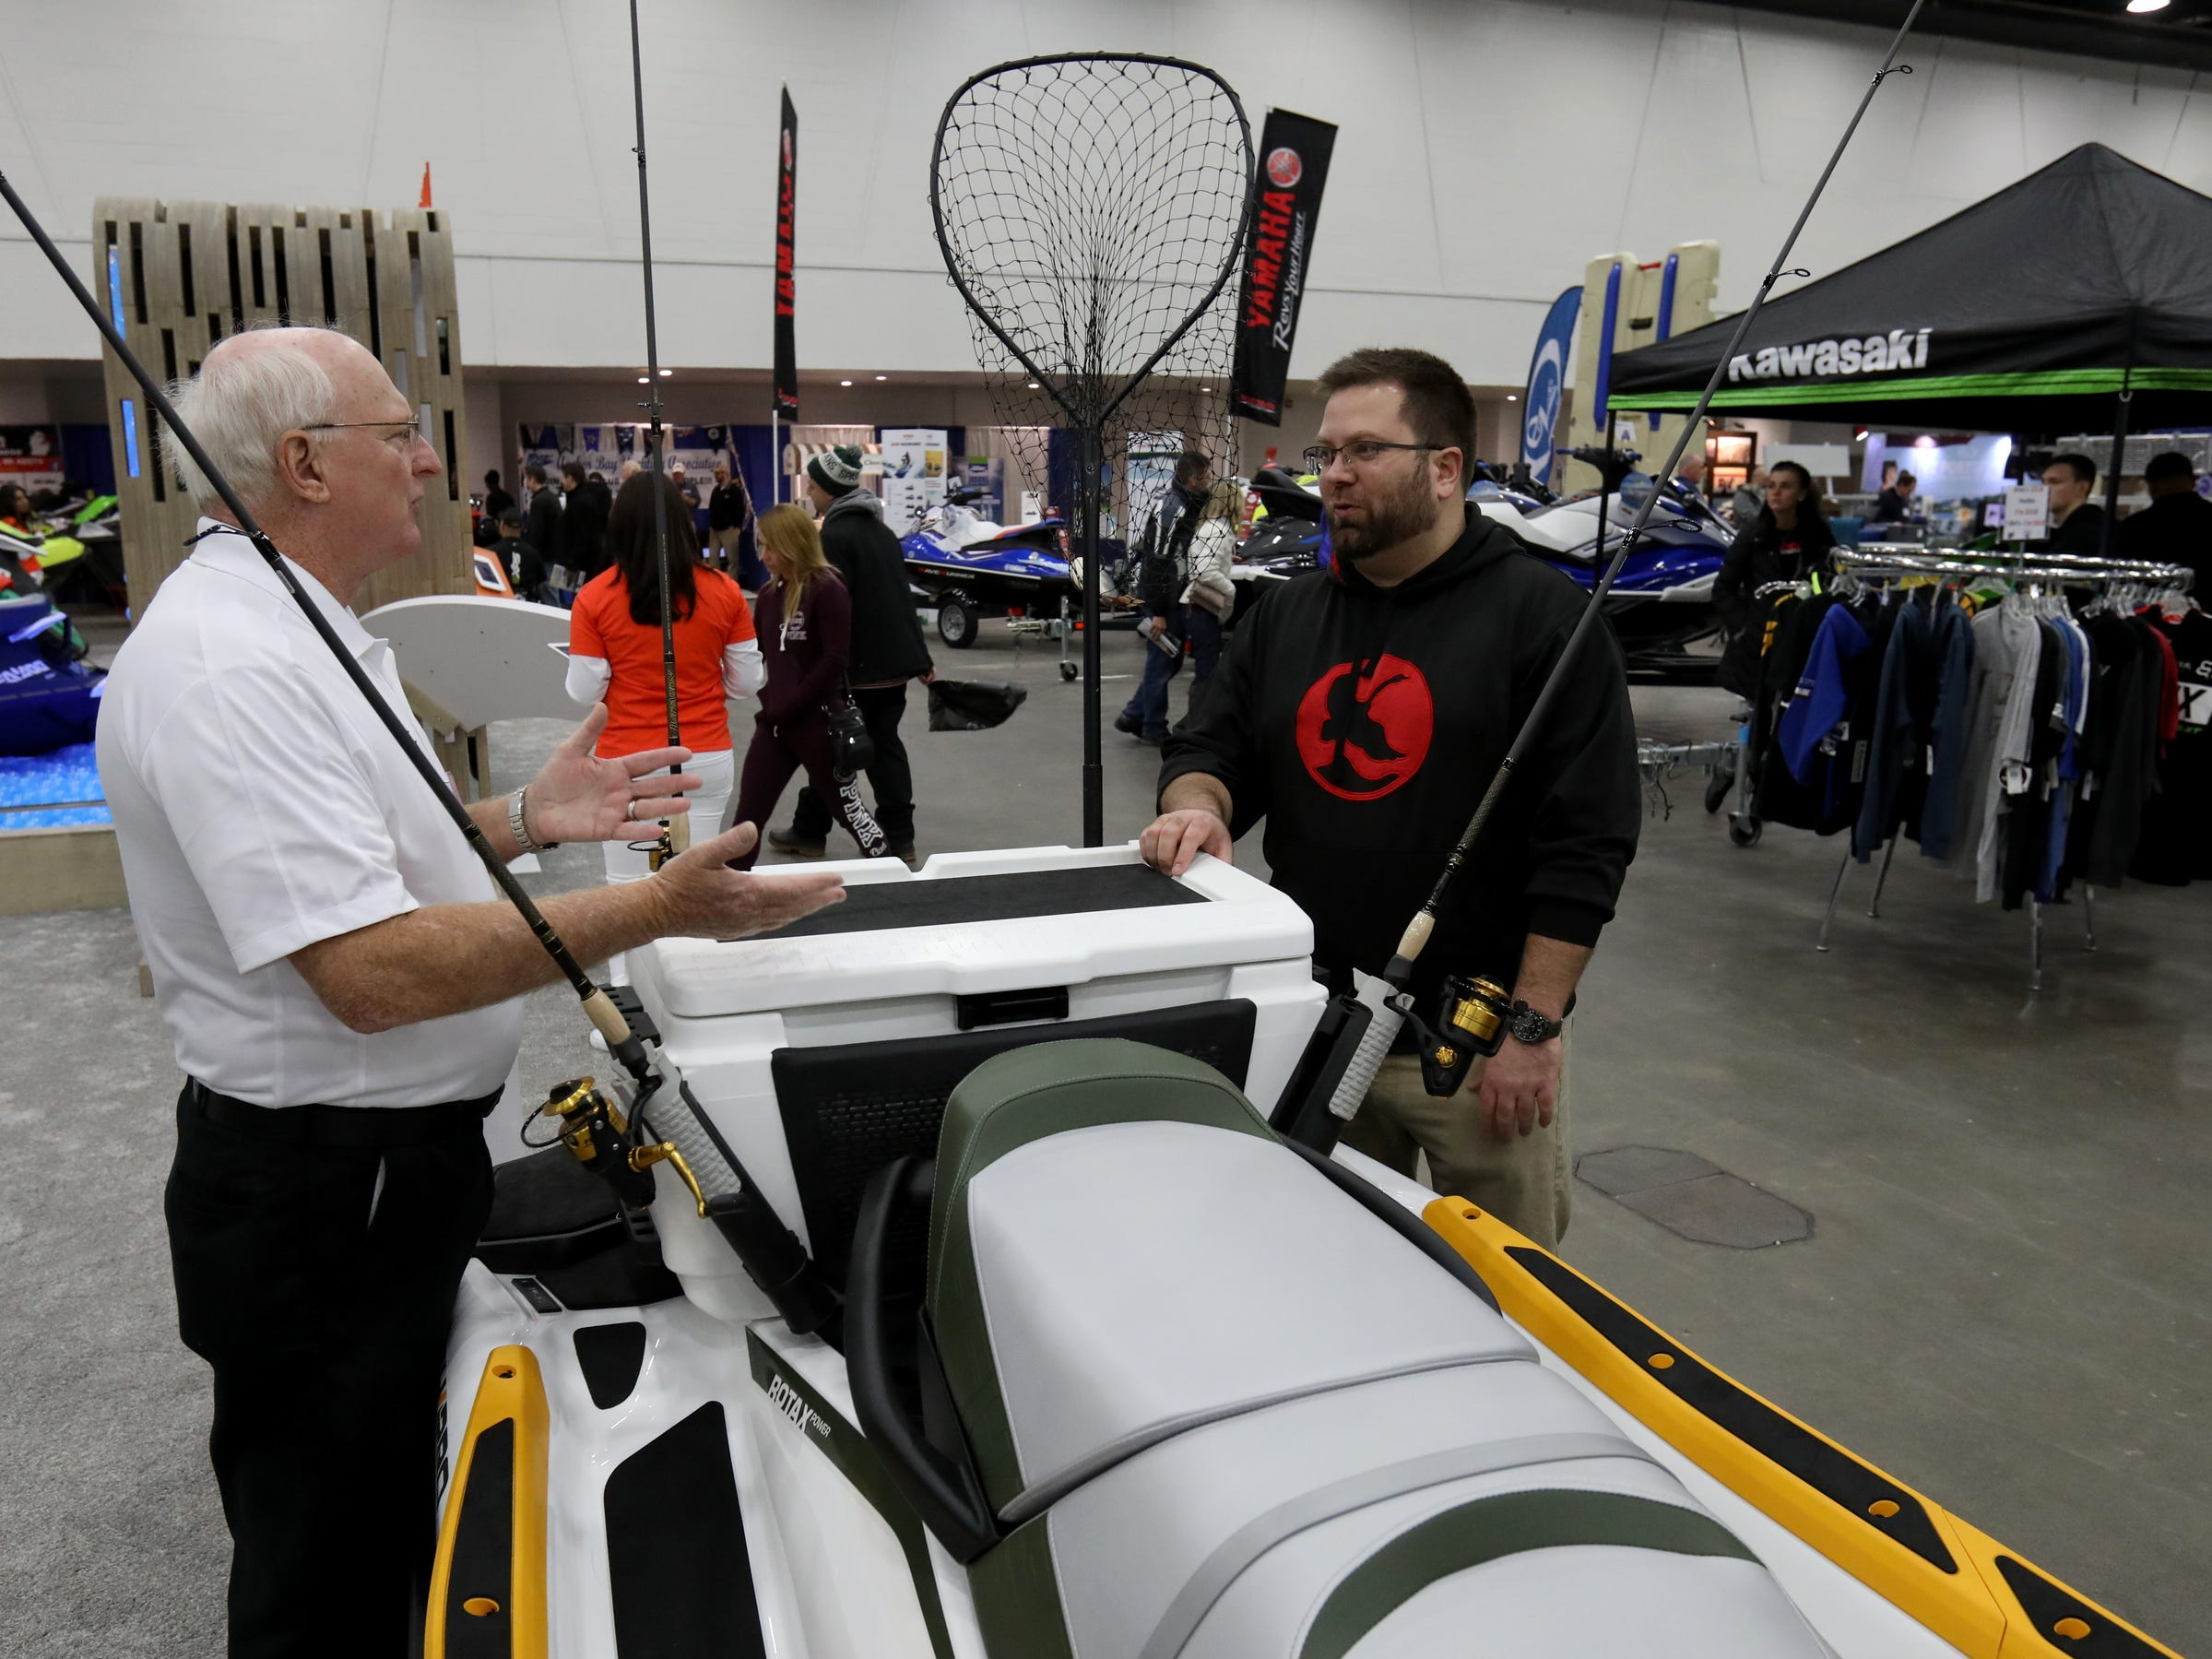 (L to R) See-Doo product specialist Ted McKercher and Nick Carnacchi, 33 of West Bloomfield talk about See-Doo's new Fish Pro jet ski that has been outfitted for fishing. It was one of many personal watercraft on display during the Detroit Boat Show at Cobo Center in Detroit on Saturday, February 16, 2019.Carnacchi has a See-Doo RXTX and outfitted it with fishing poles and a water cooler to store fish and loves the idea of a jet ski purposely built for fishing..